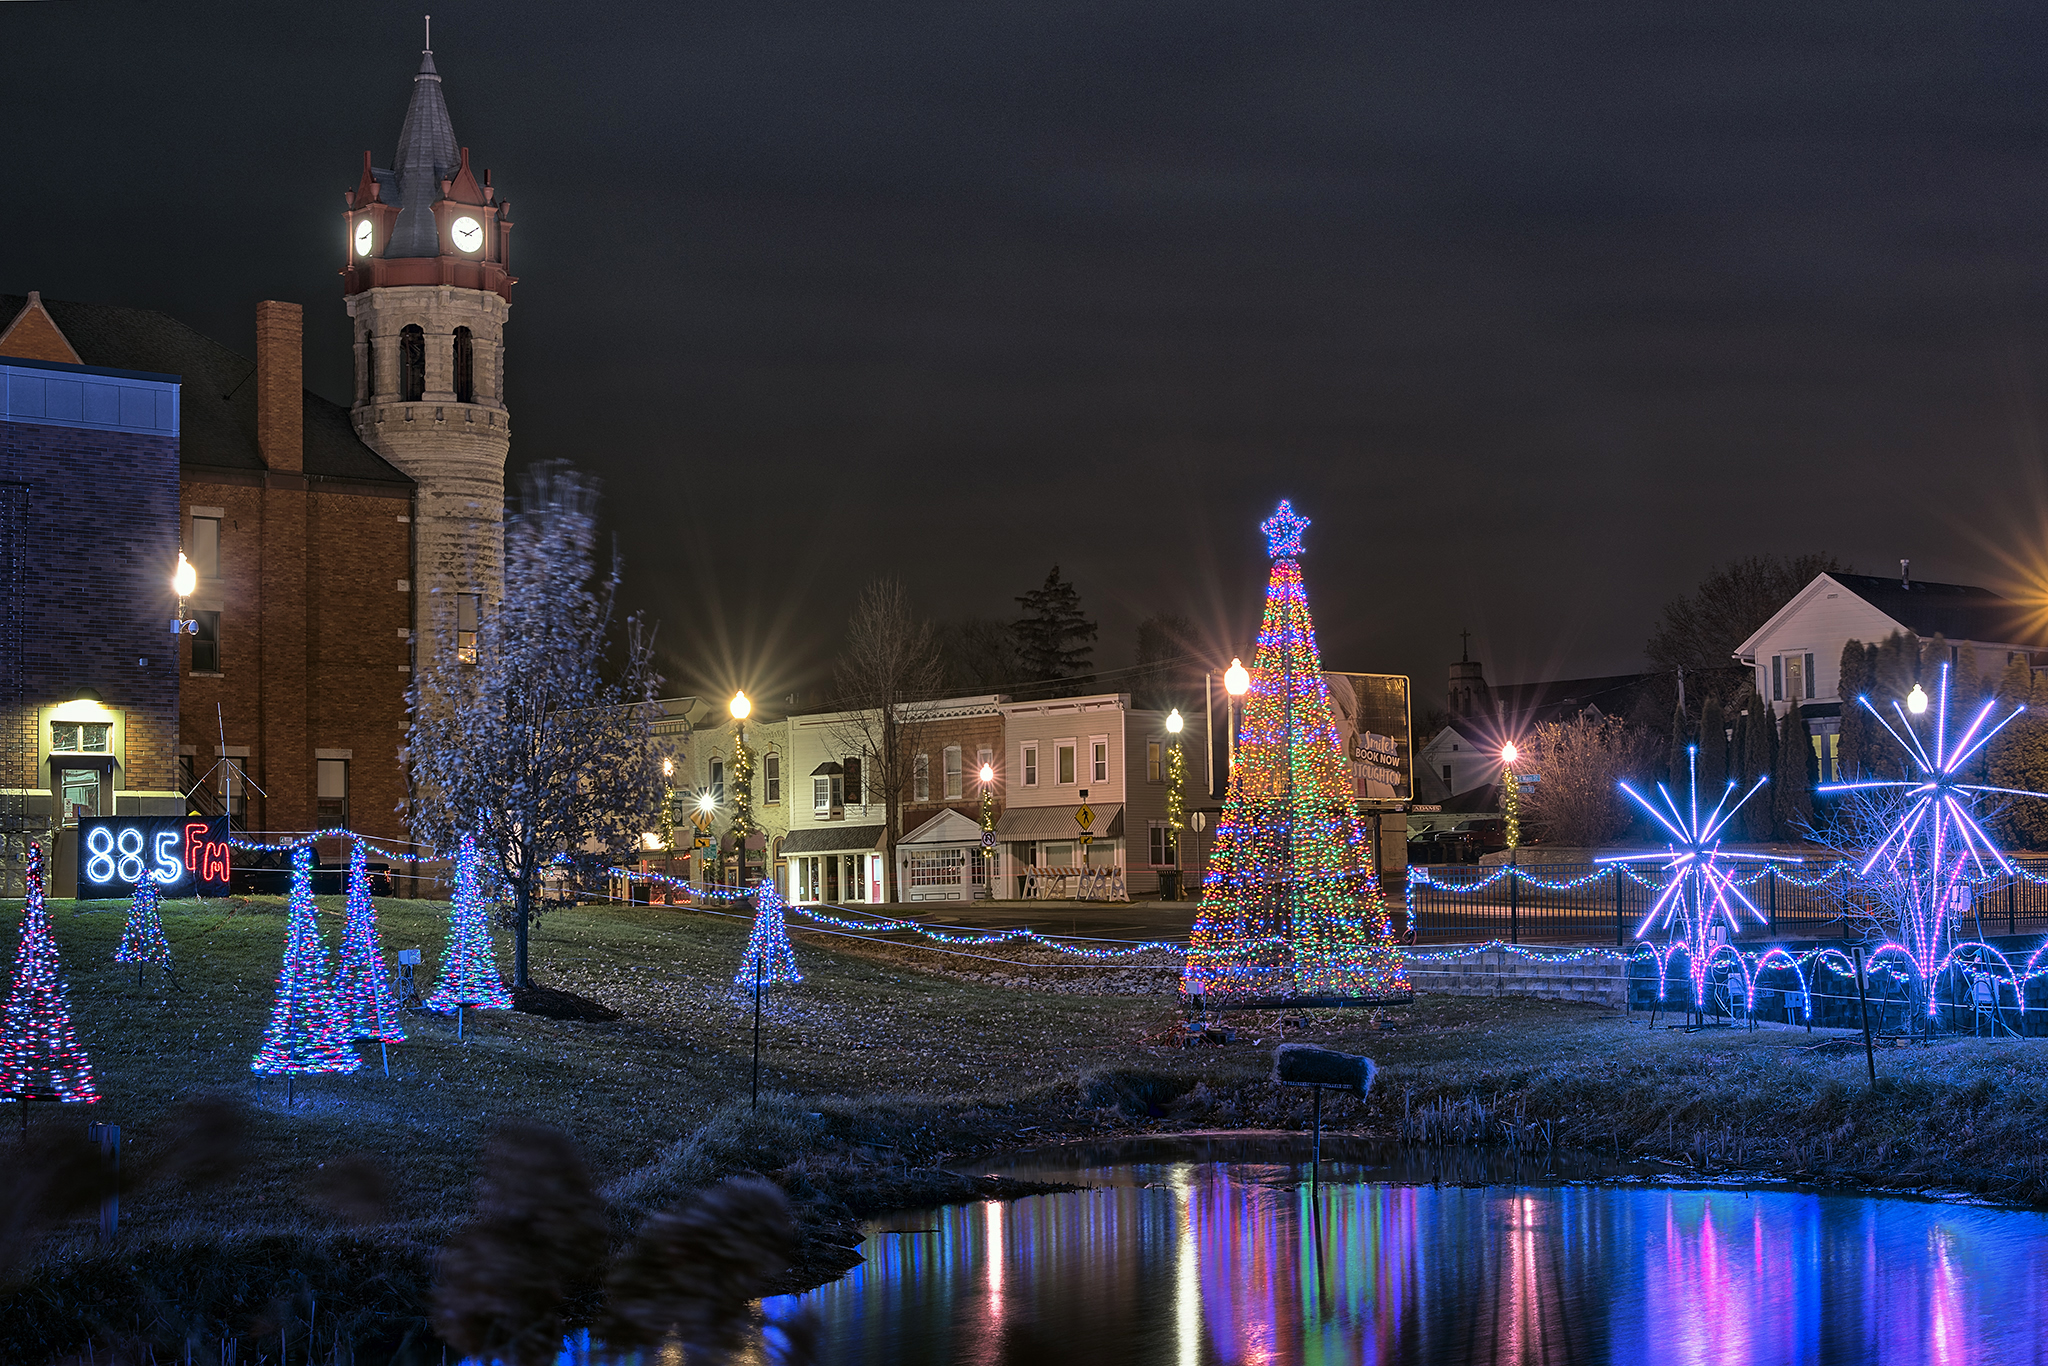 Holiday Light Display at Rotary Park in Stoughton, Wisconsin.